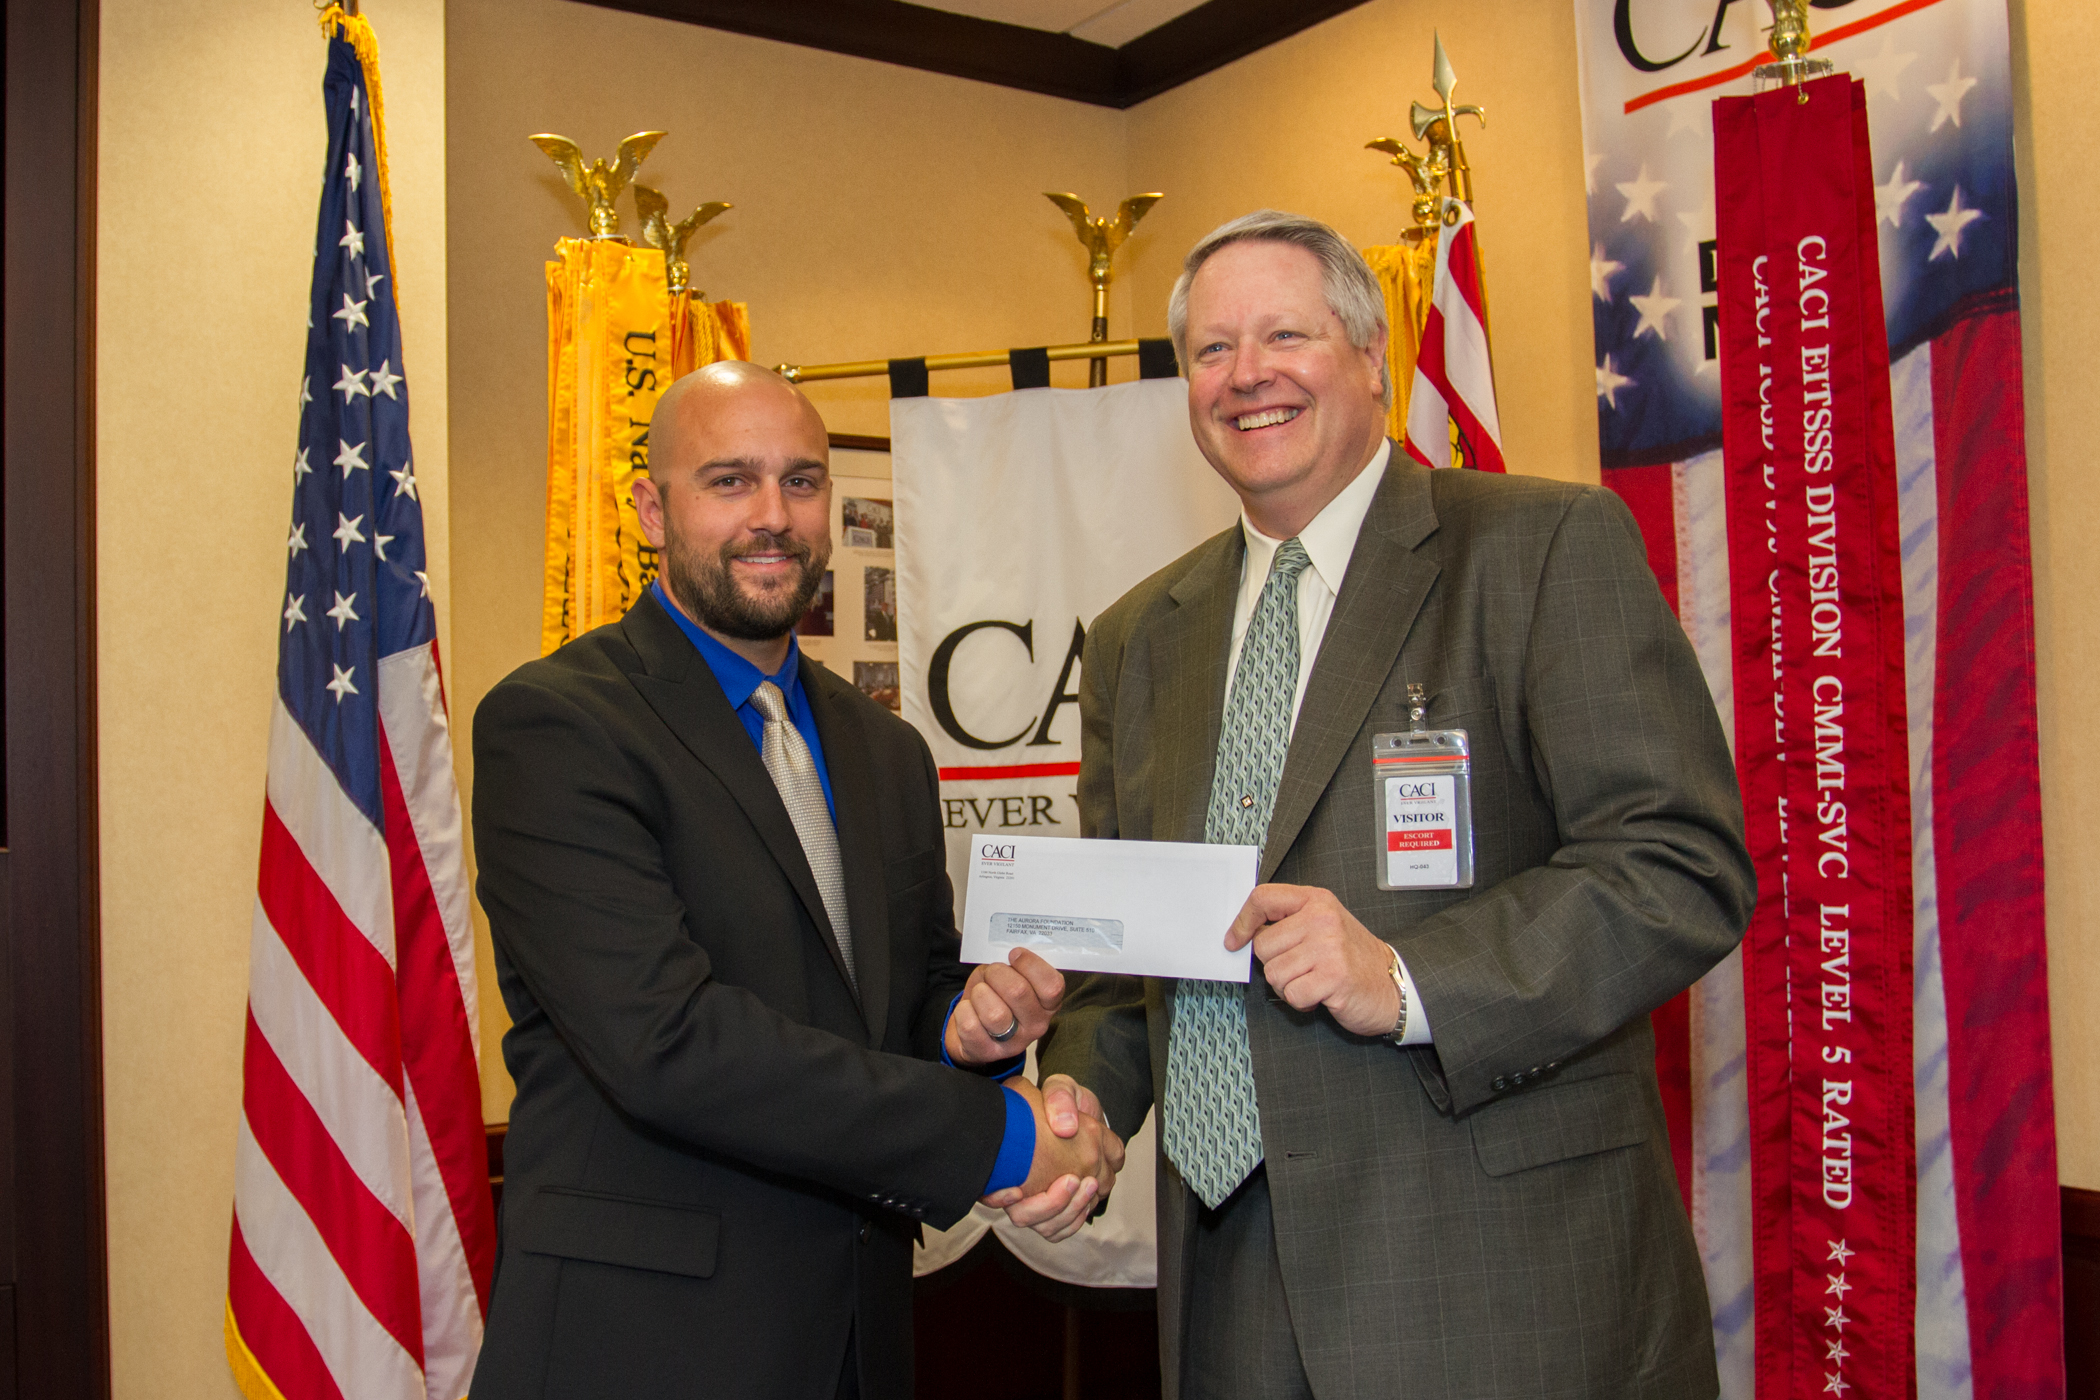 Josh Tredinnick (Left), US Army Veteran and CACI employee, presents Tom DeWitt, Aurora Foundation Founder, with a donation from CACI in June 2014.